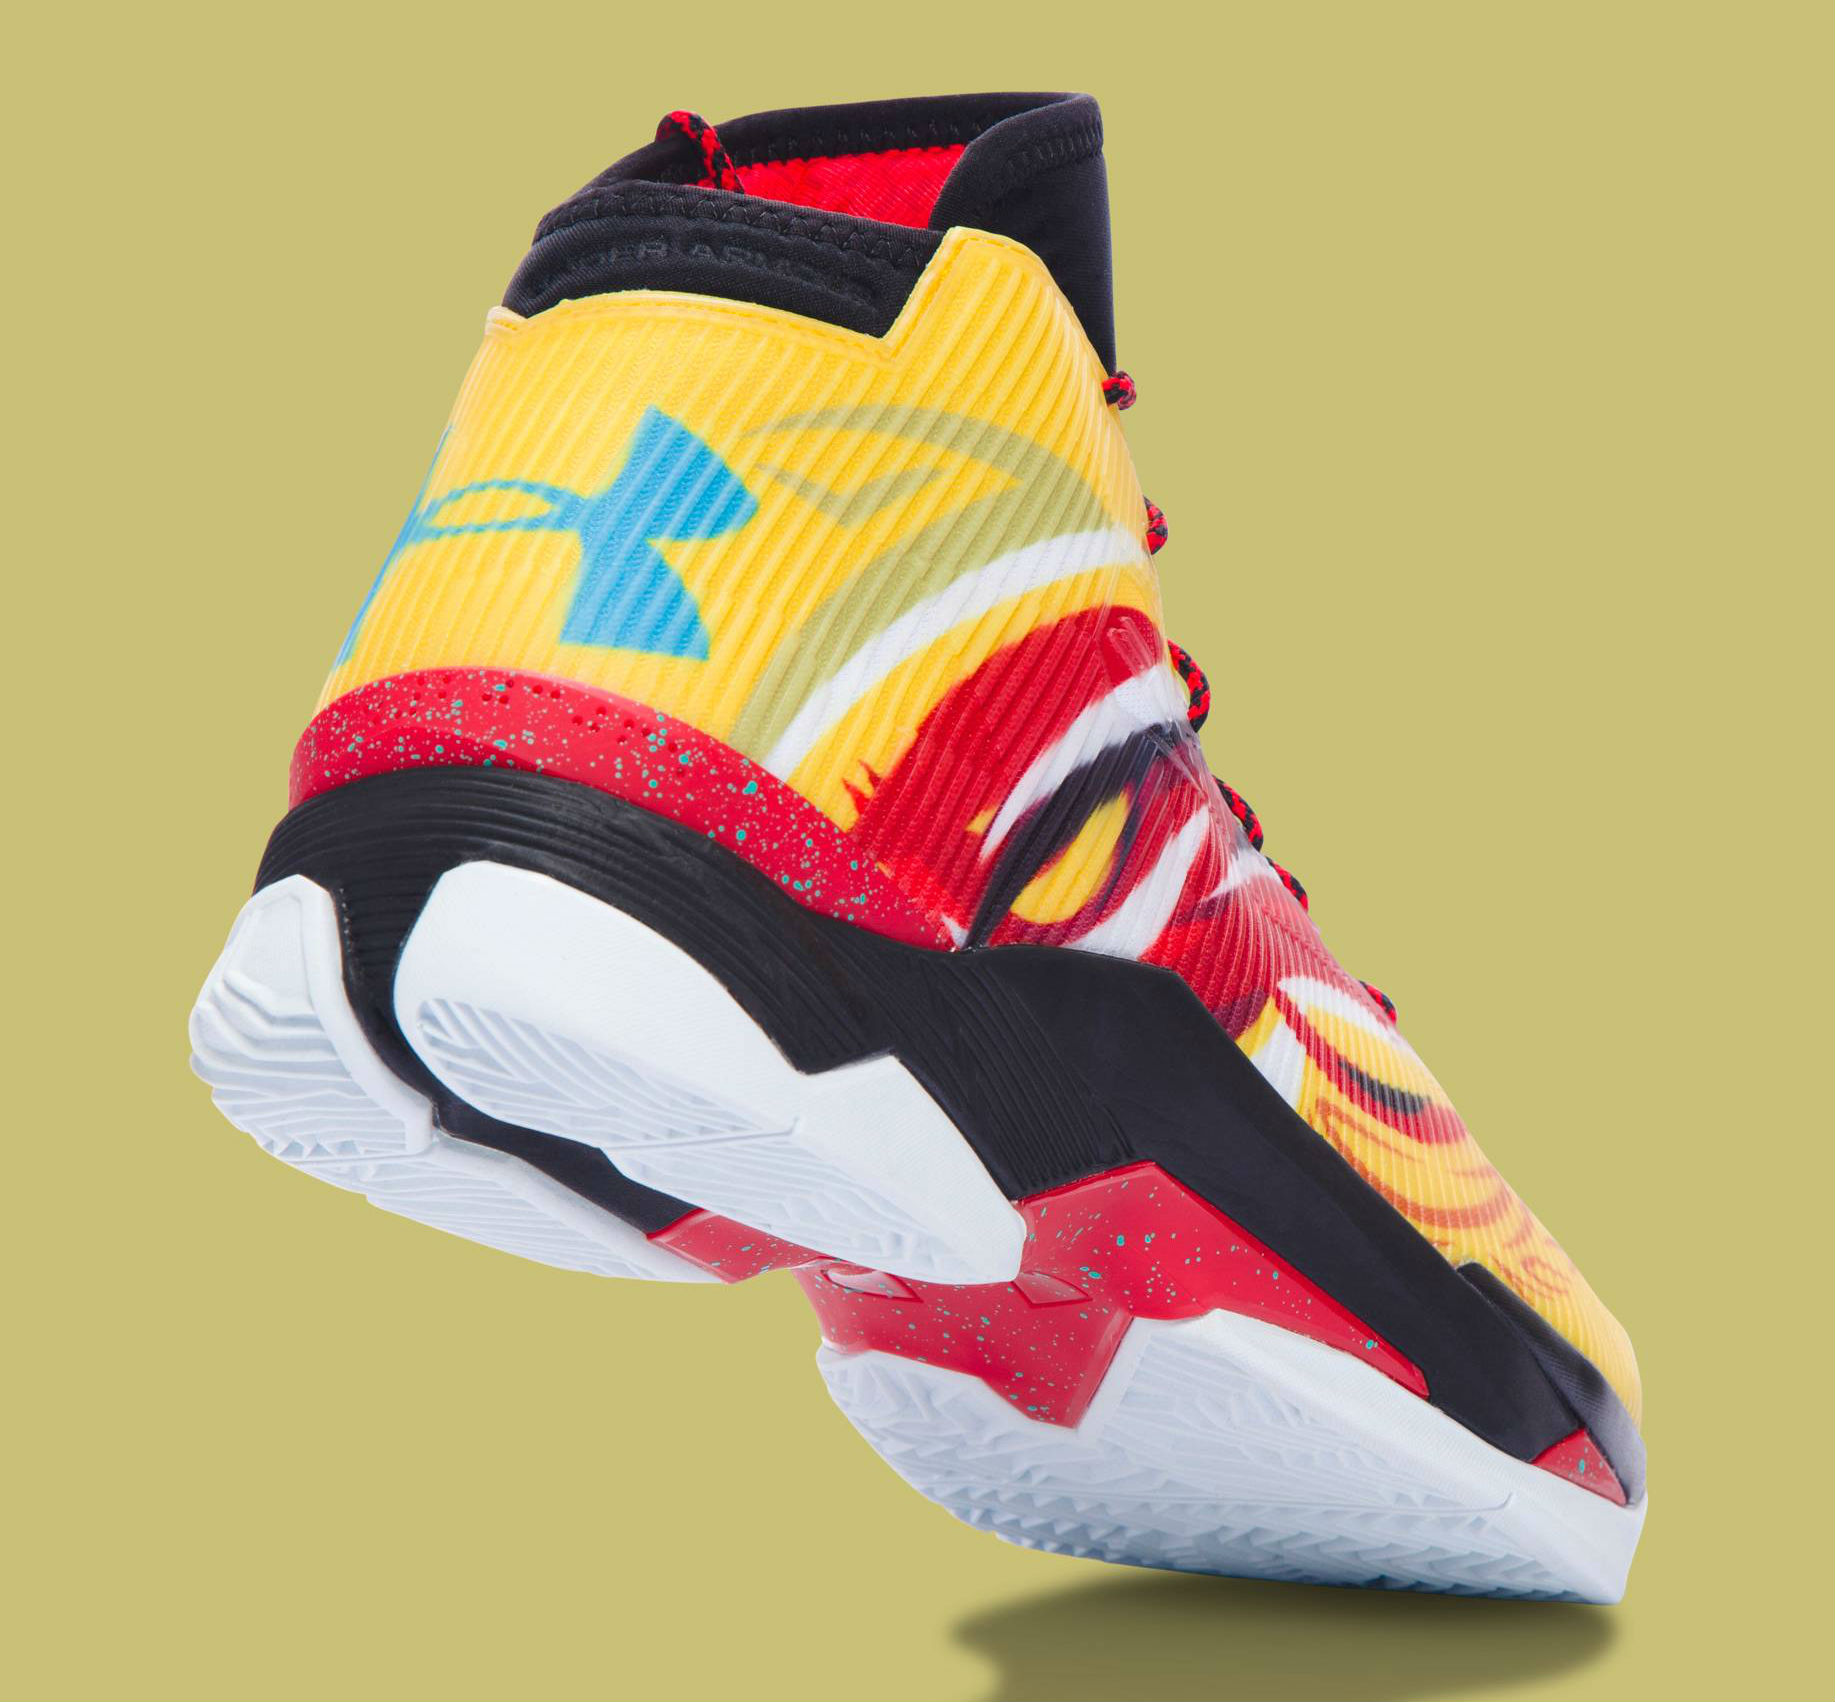 Under Armour Curry 2.5 China Tour Monkey King Heel 1288403-750